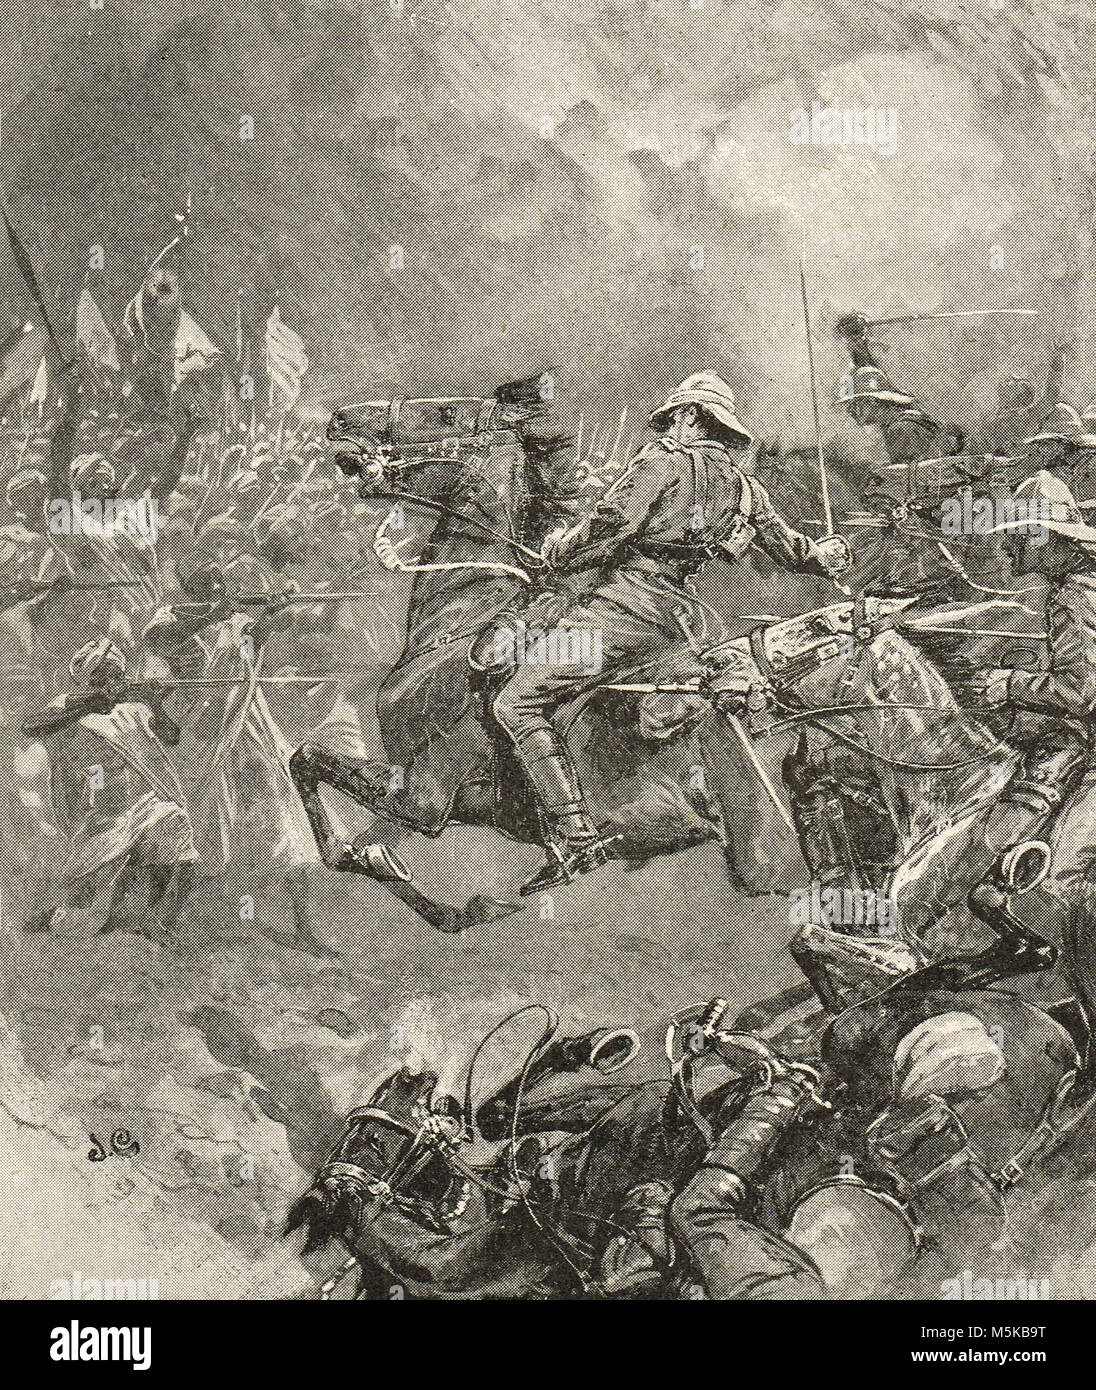 The charge of the 21st Lancers, the Battle of Omdurman, 2 September 1898 - Stock Image